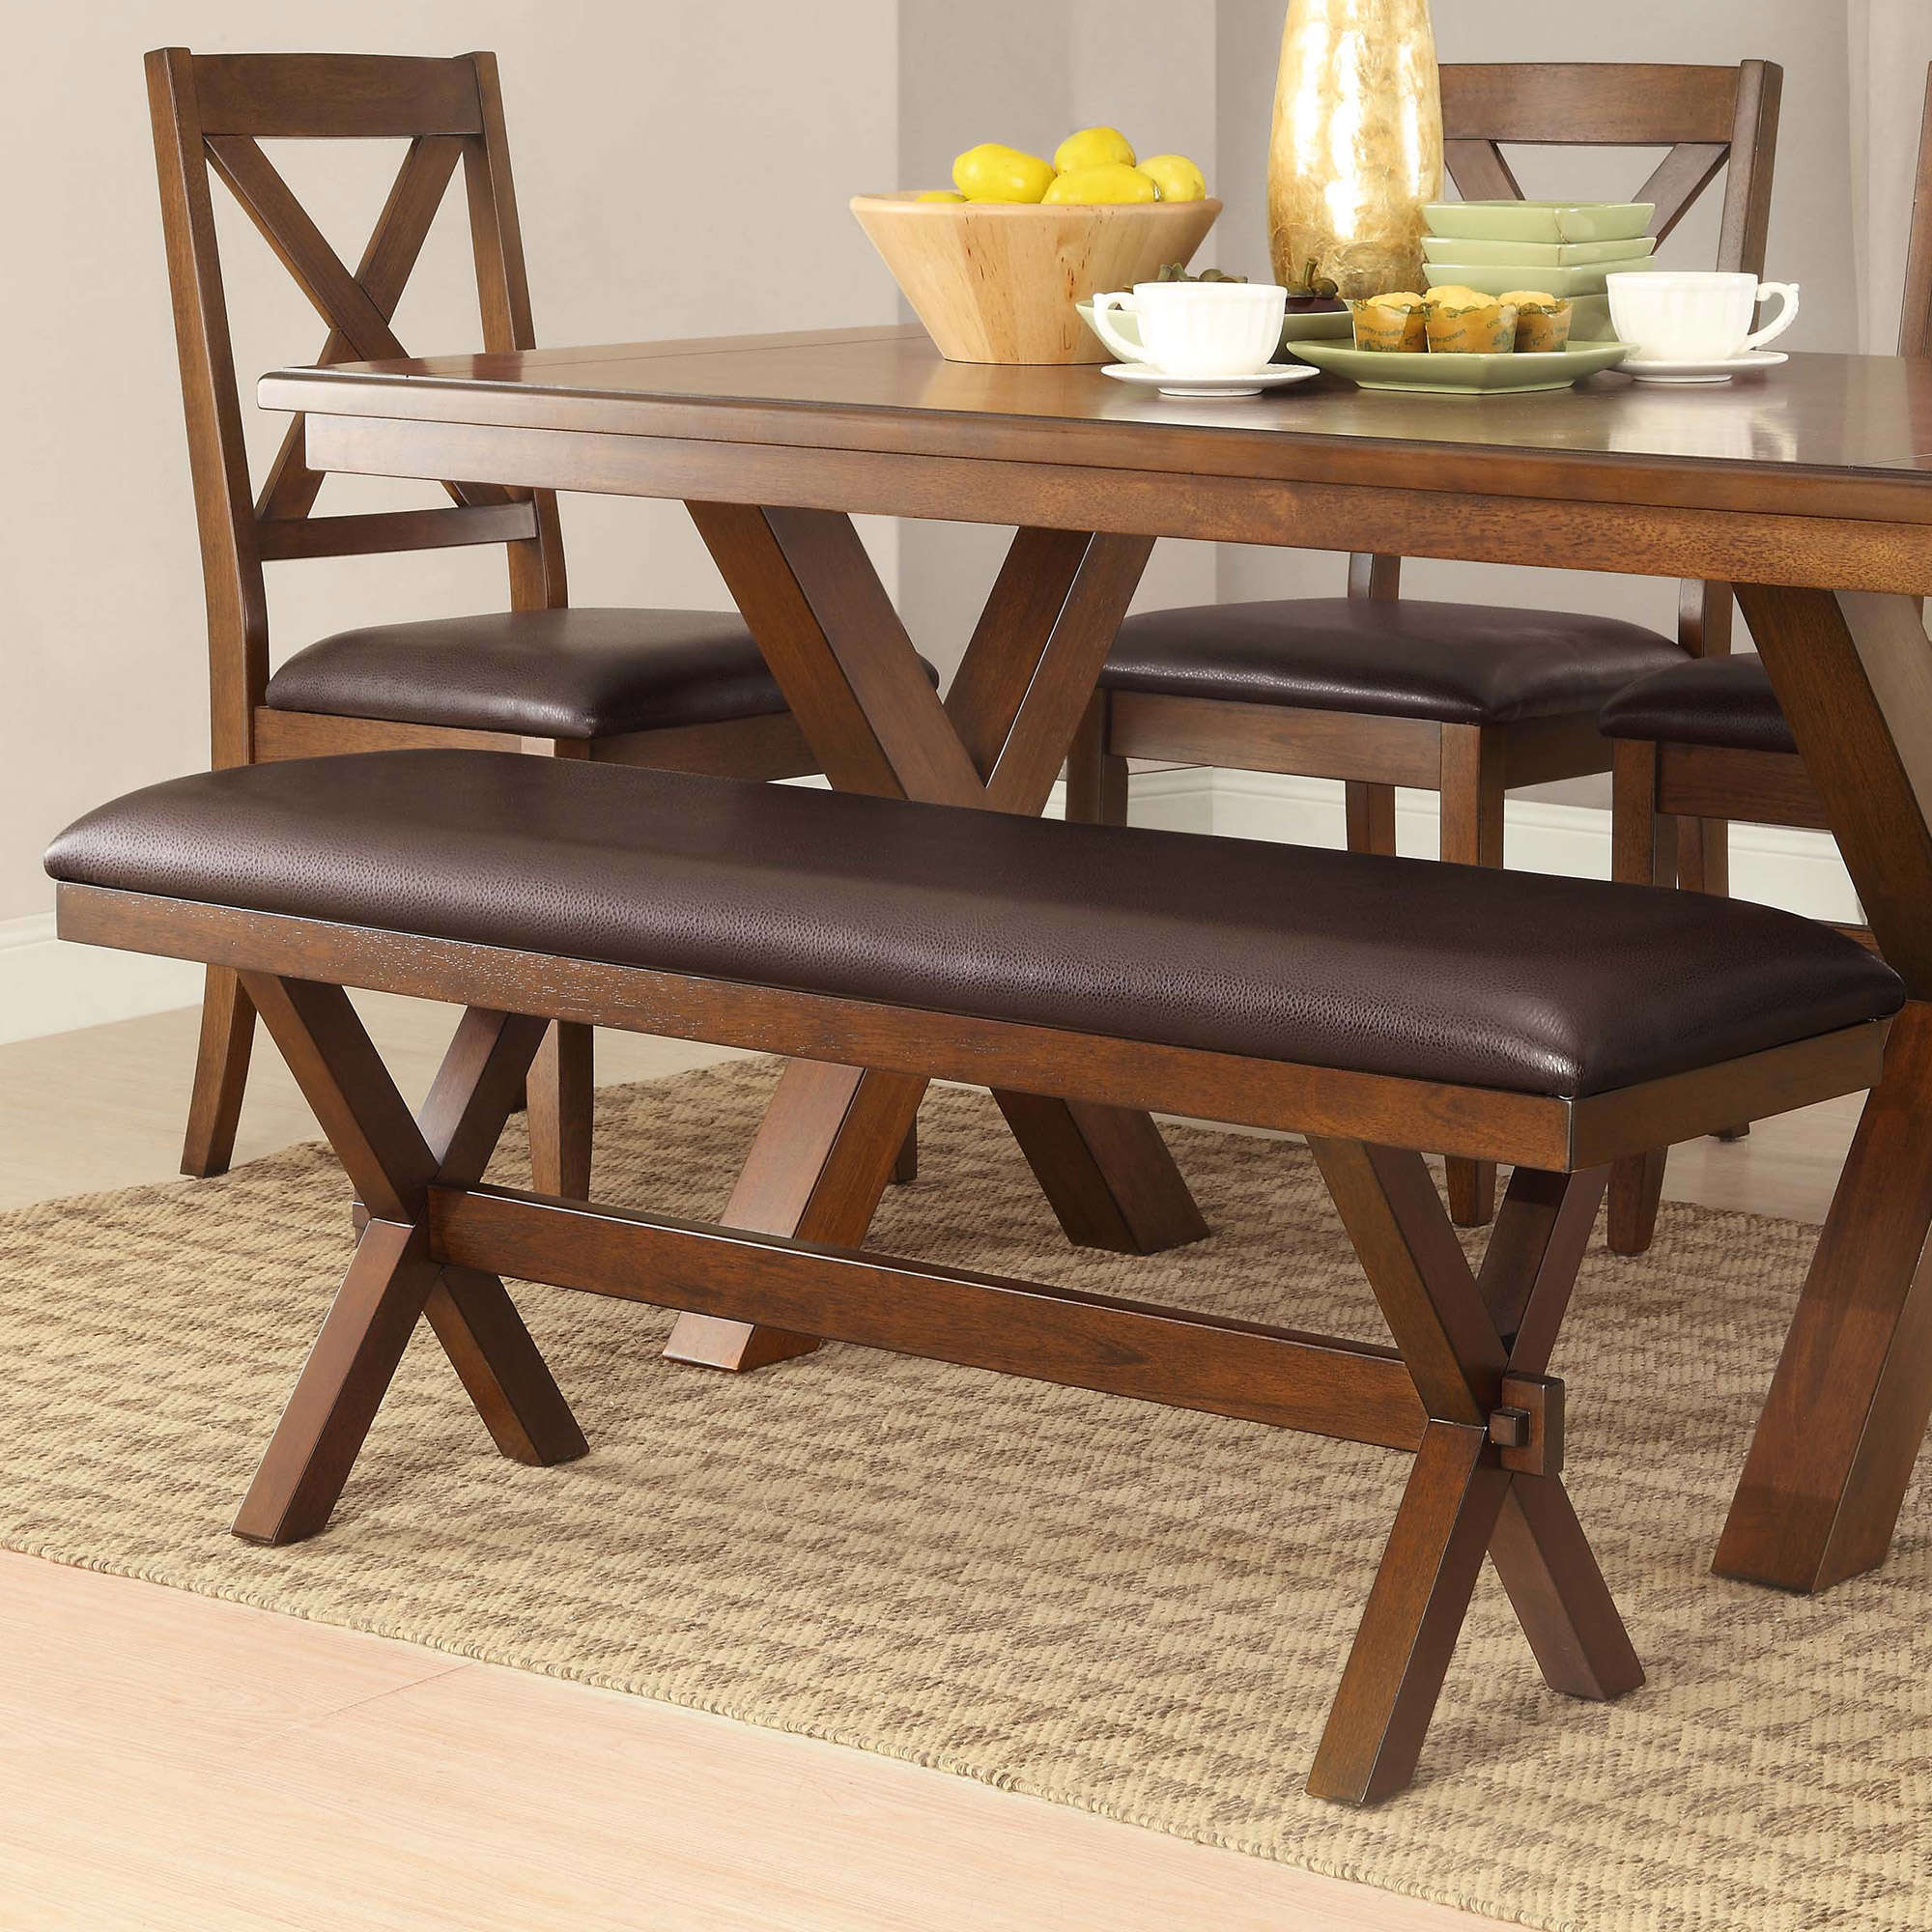 Better Homes Gardens Maddox Crossing Dining Bench Espresso Finish Walmart Com Walmart Com